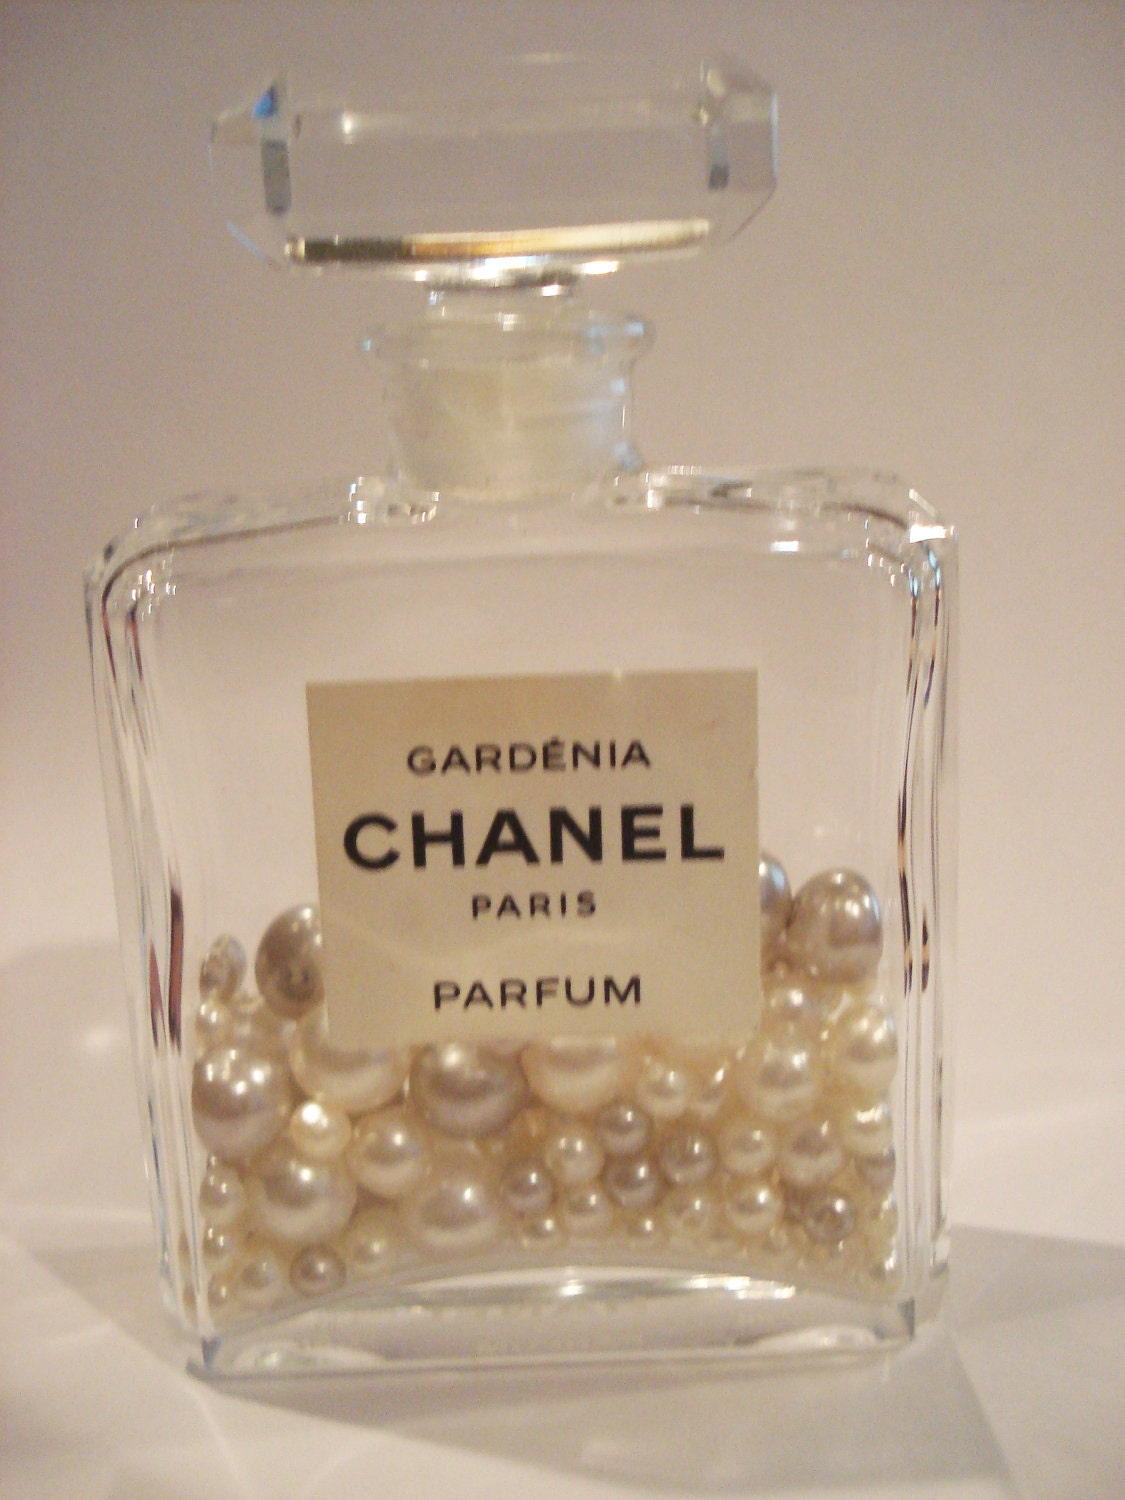 Authentic Gardenia Chanel Paris Medium Parfum Perfume Bottle